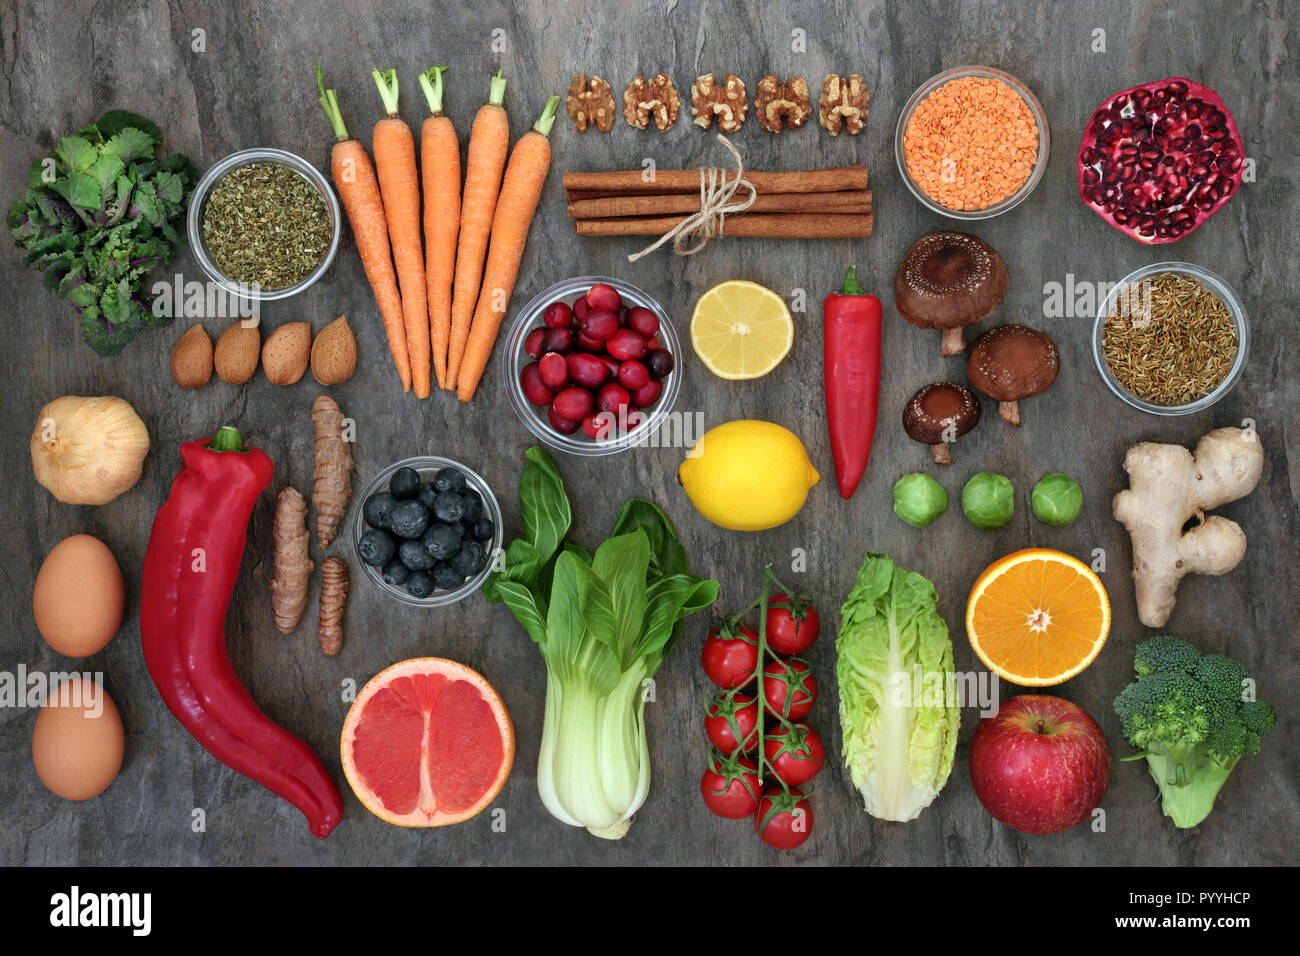 Health food to slow ageing process concept including fruit, vegetables, spices and herbs used in herbal medicine . - Stock Image